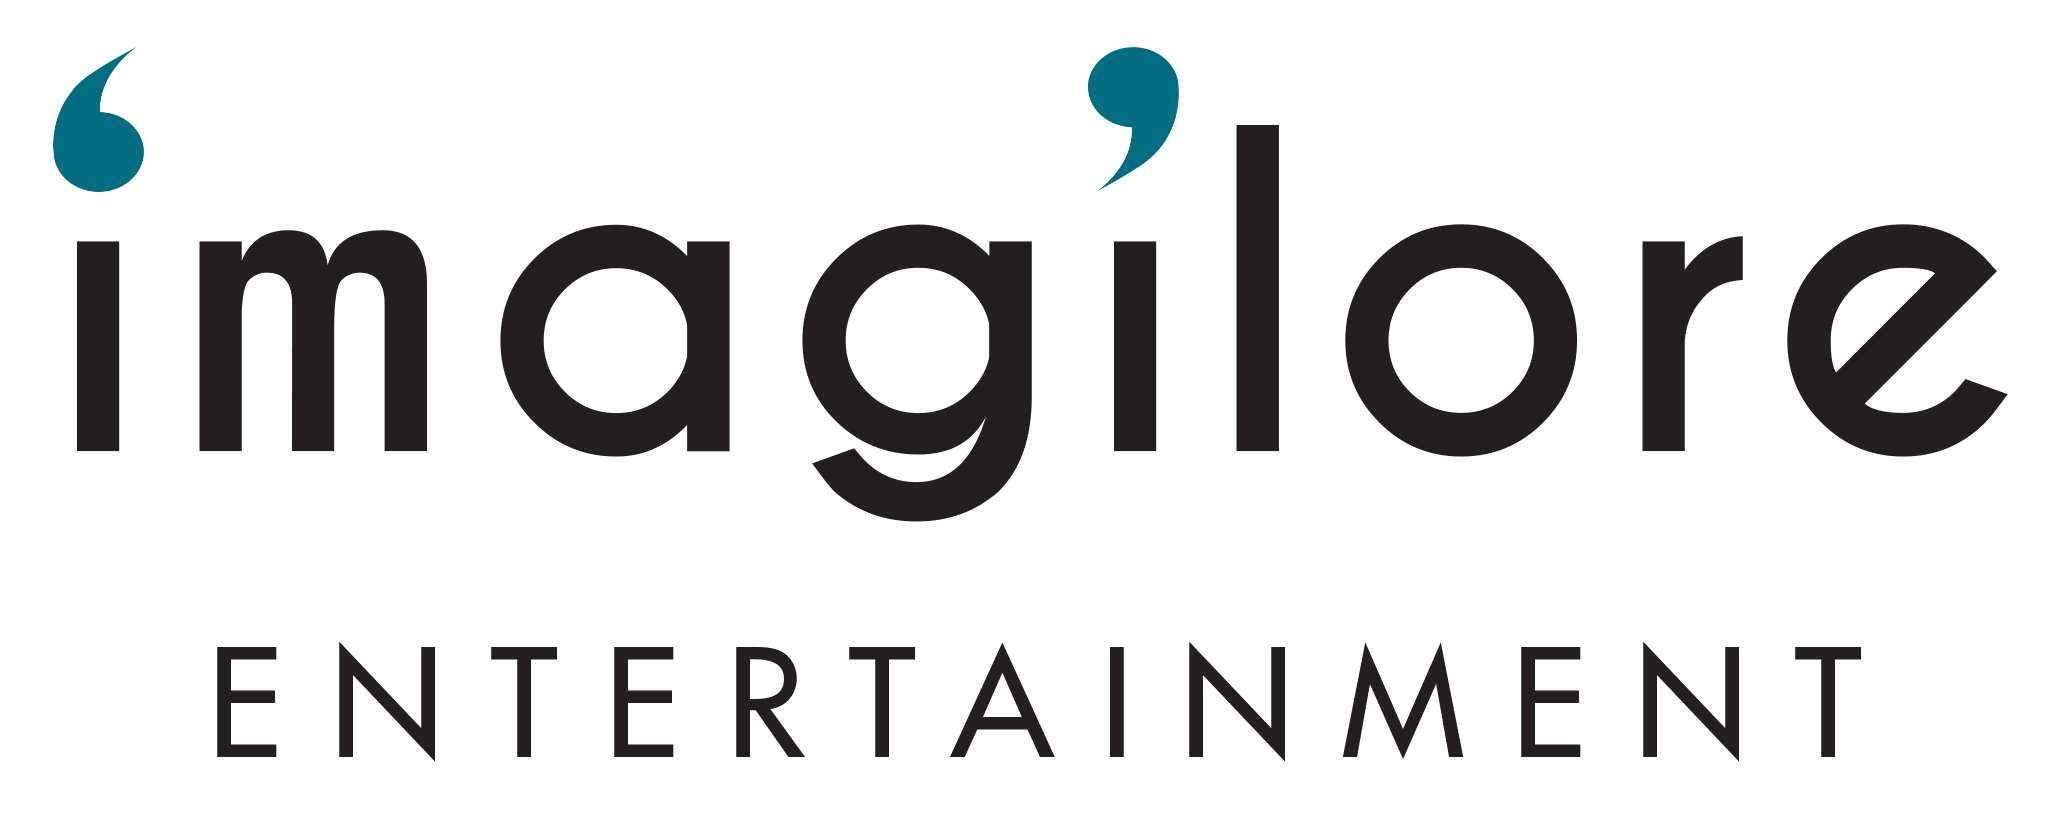 Imagilore Entertainment